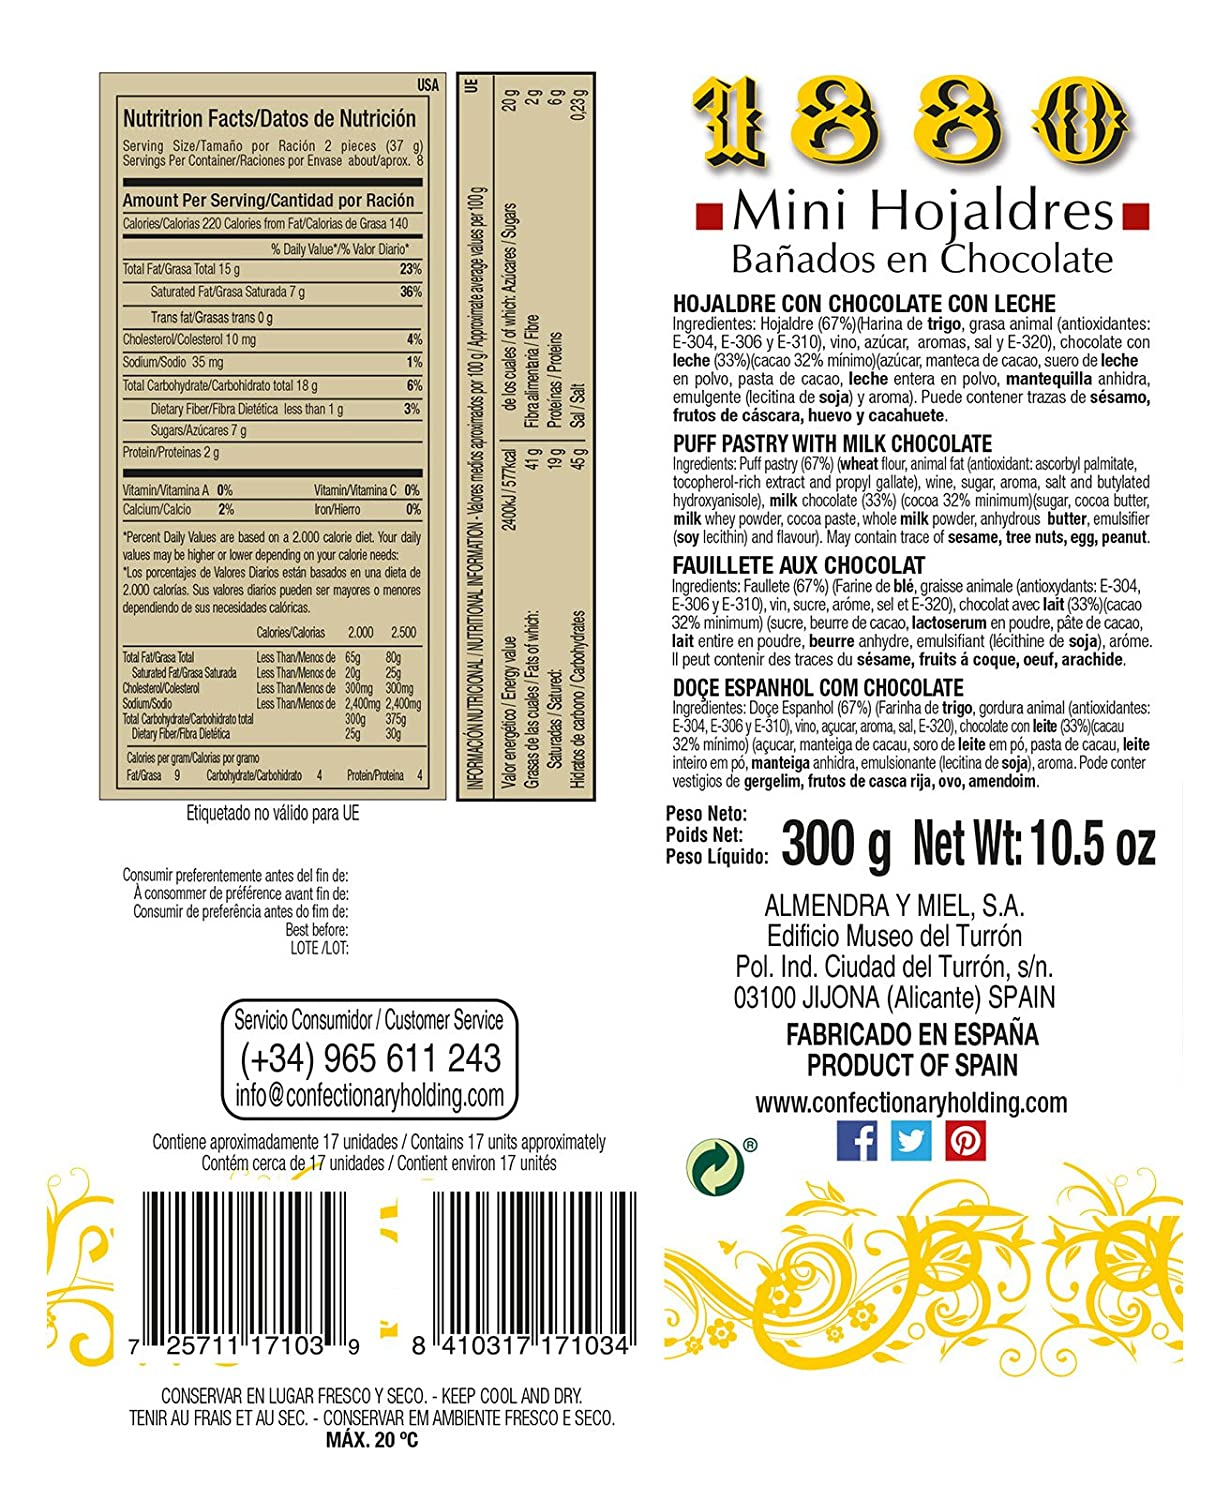 Mini chocolate hojaldres pastas de hojaldre by 1880 10,5 oz ...